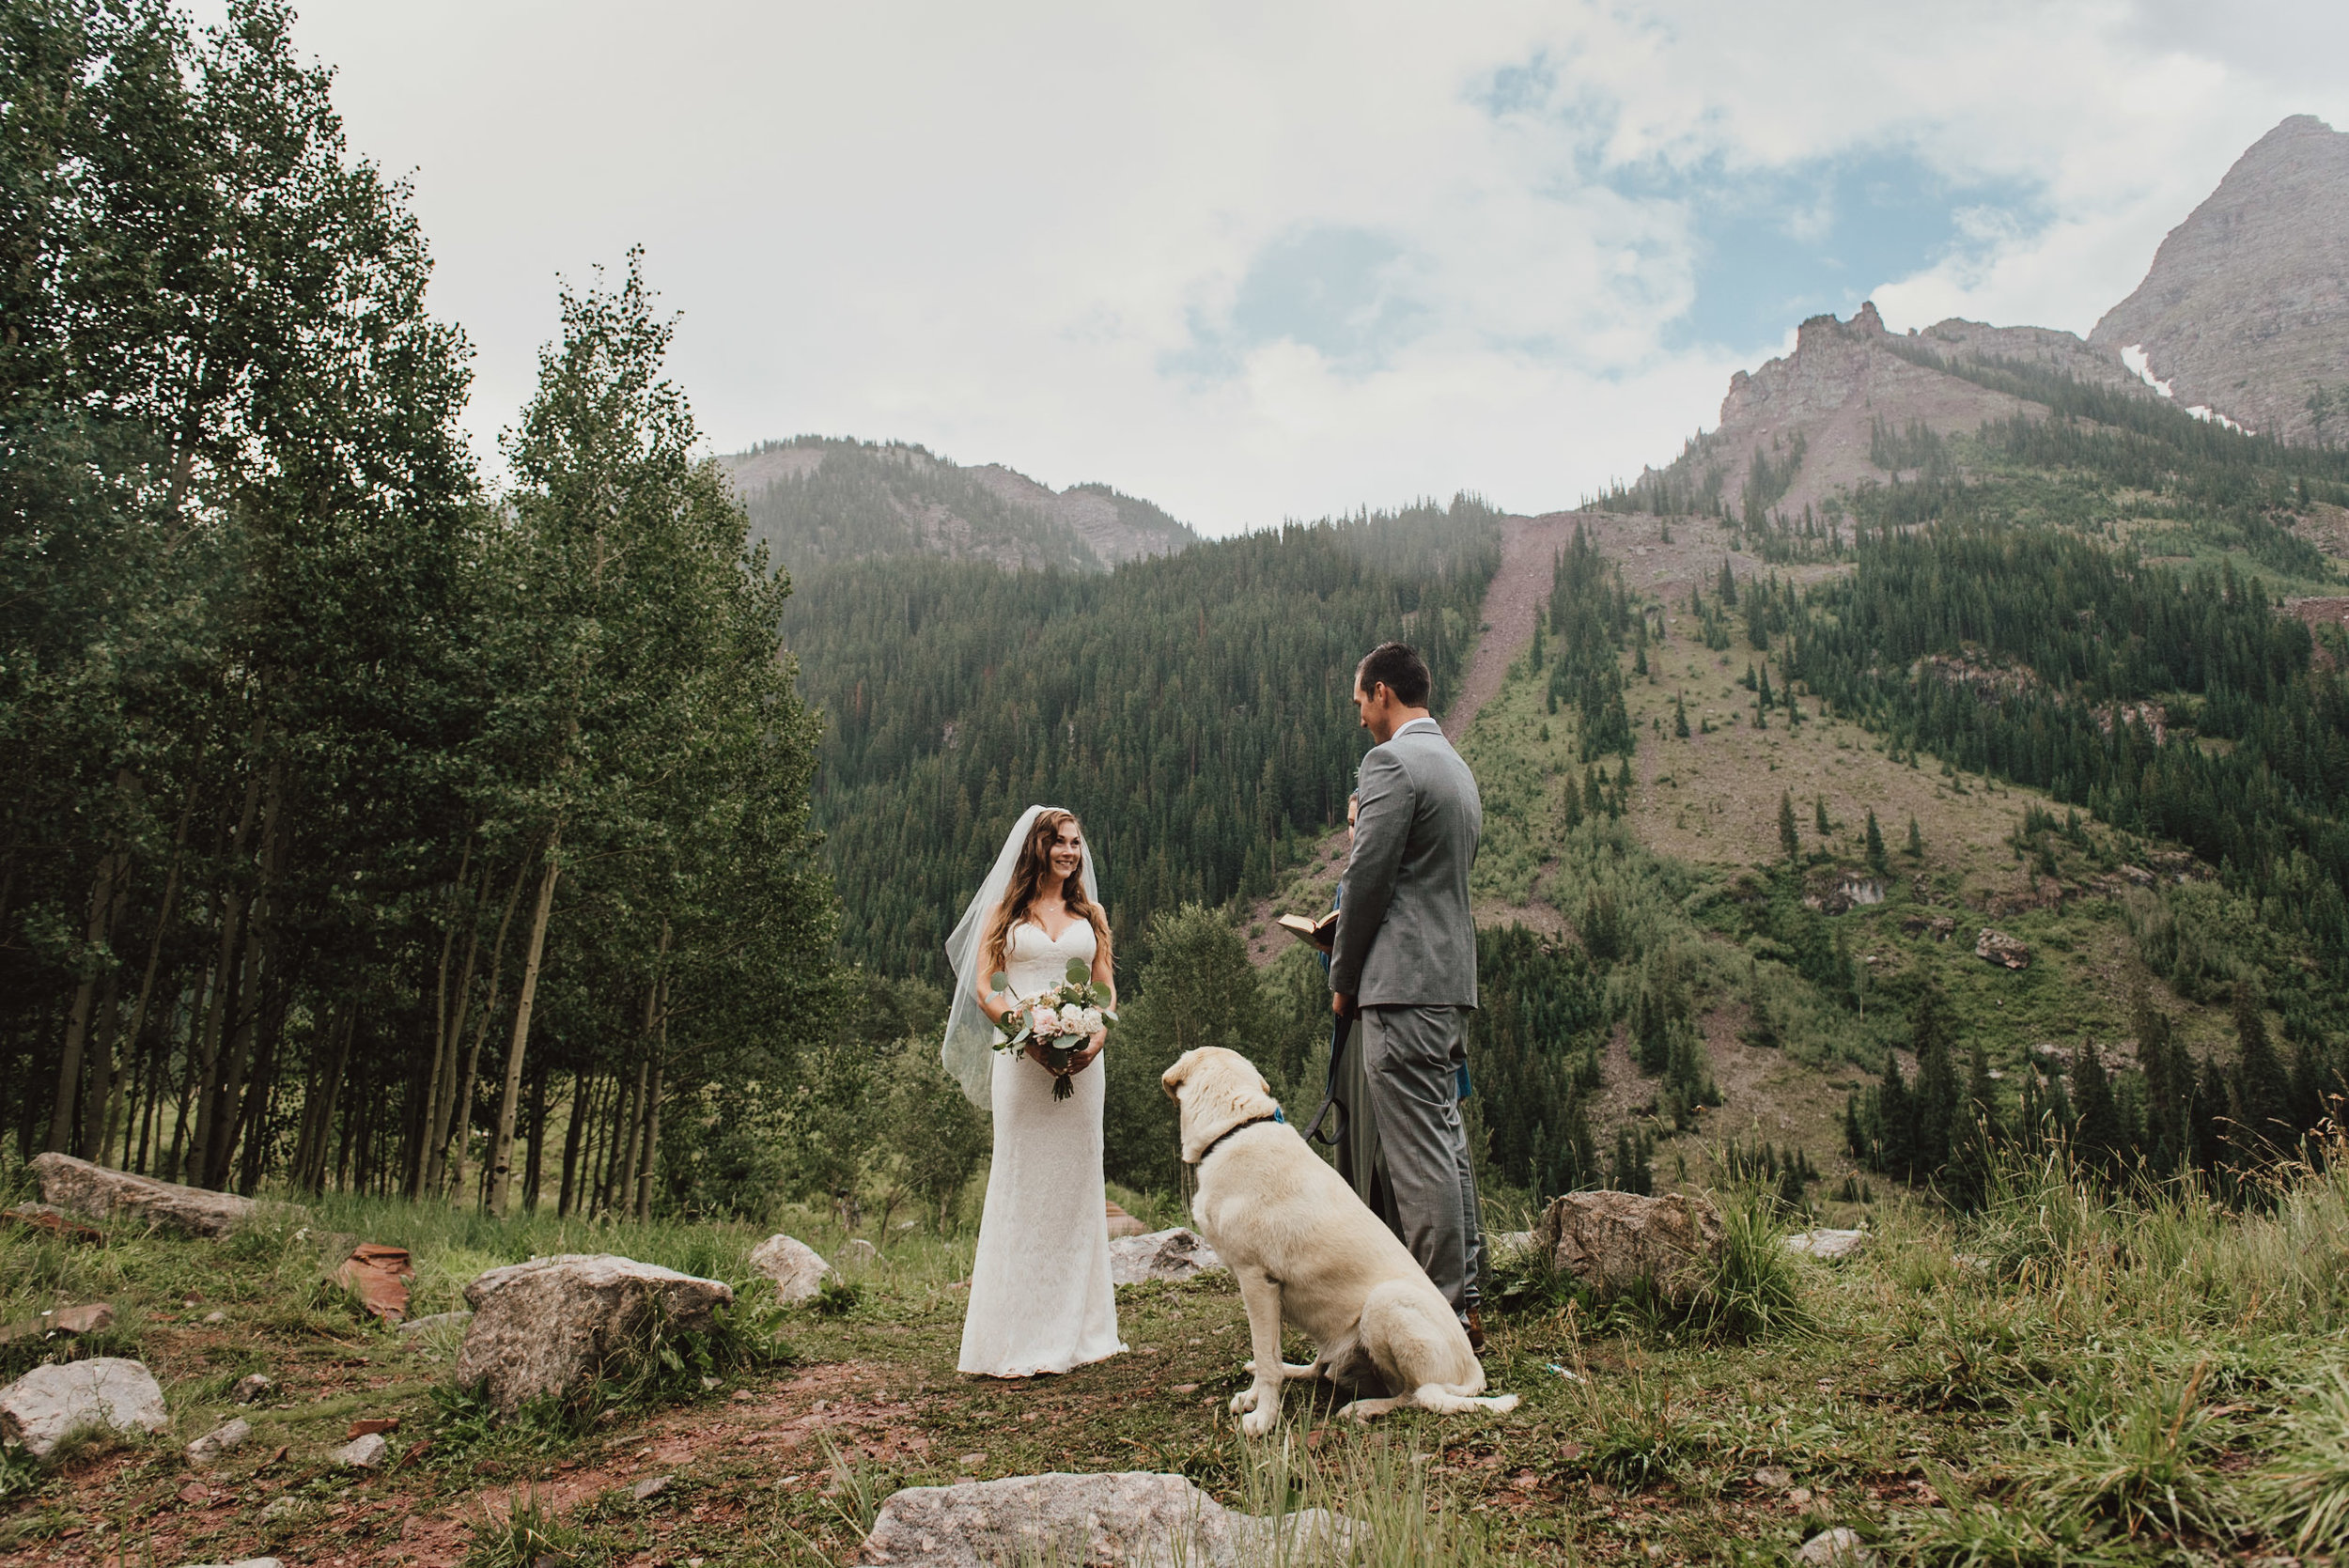 Heather and Darren during their wedding vows at the Maroon Bells.